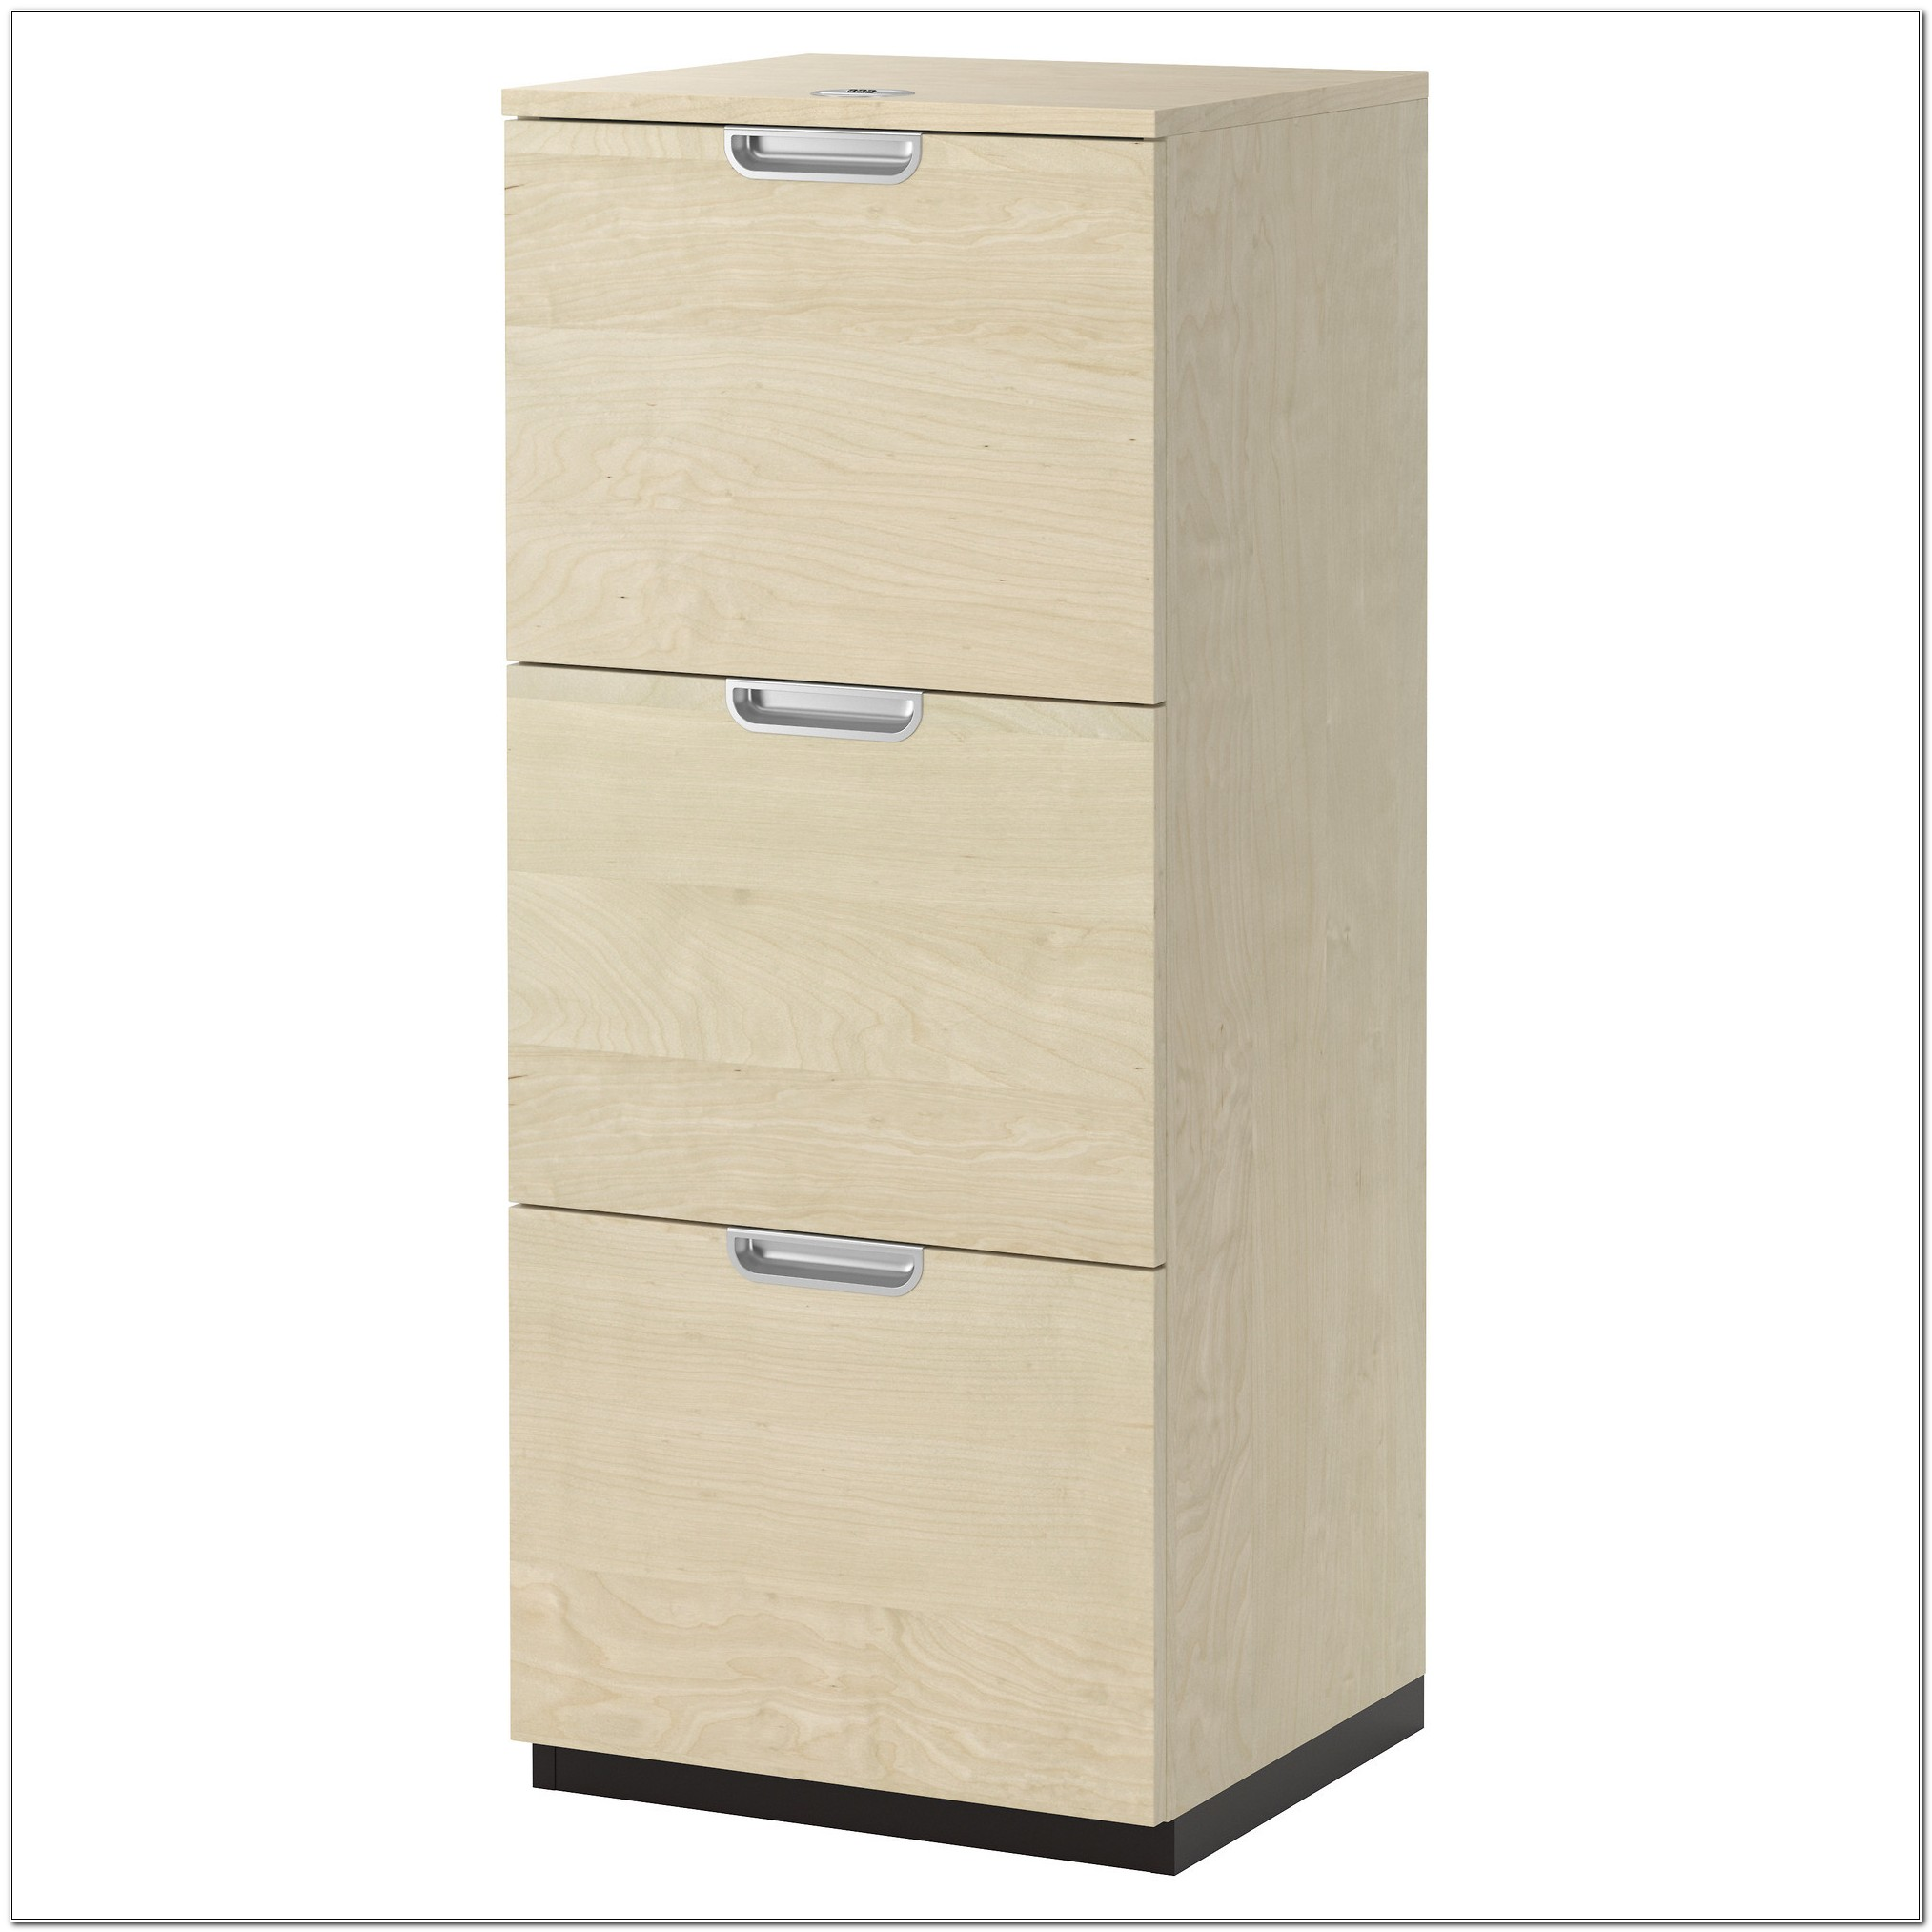 2 Drawer Filing Cabinet Ikea Uk